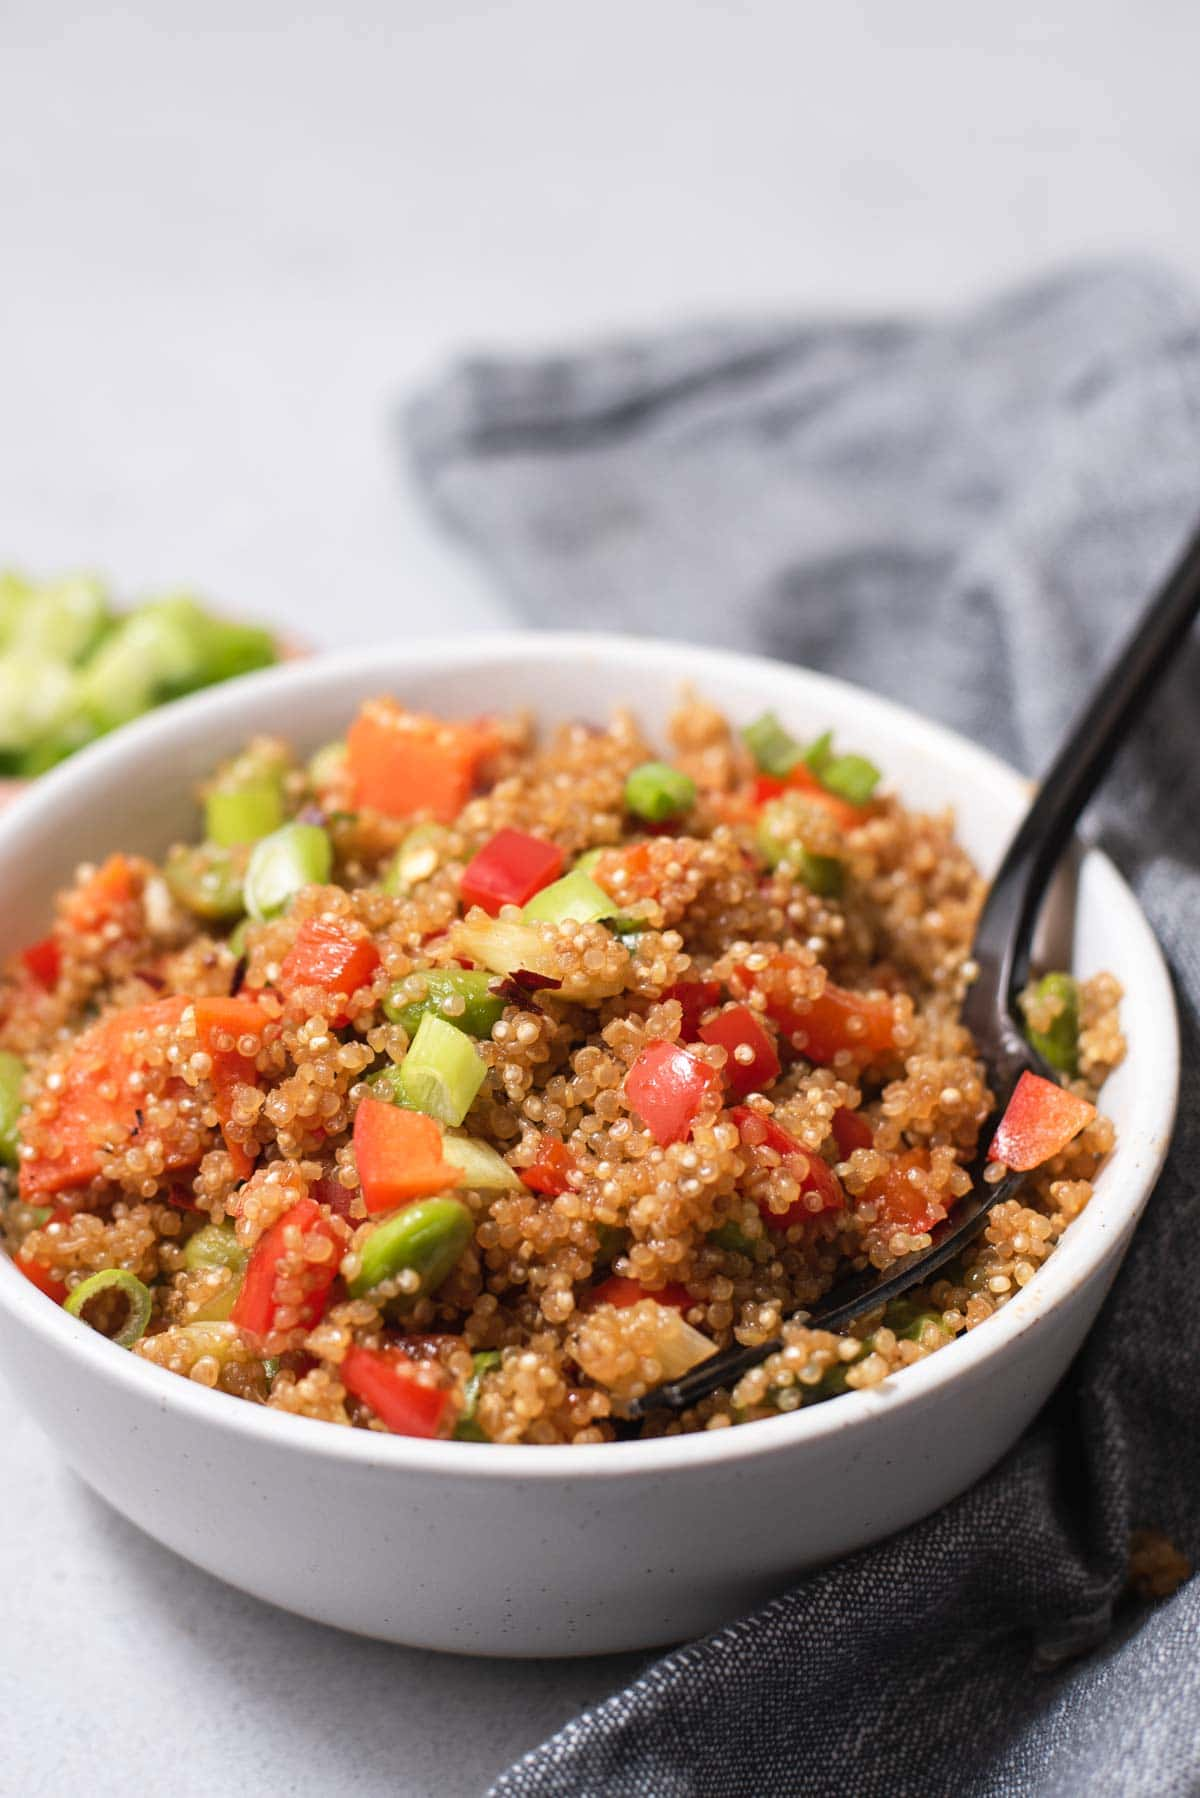 Black fork in a white bowl filled with quinoa fried rice